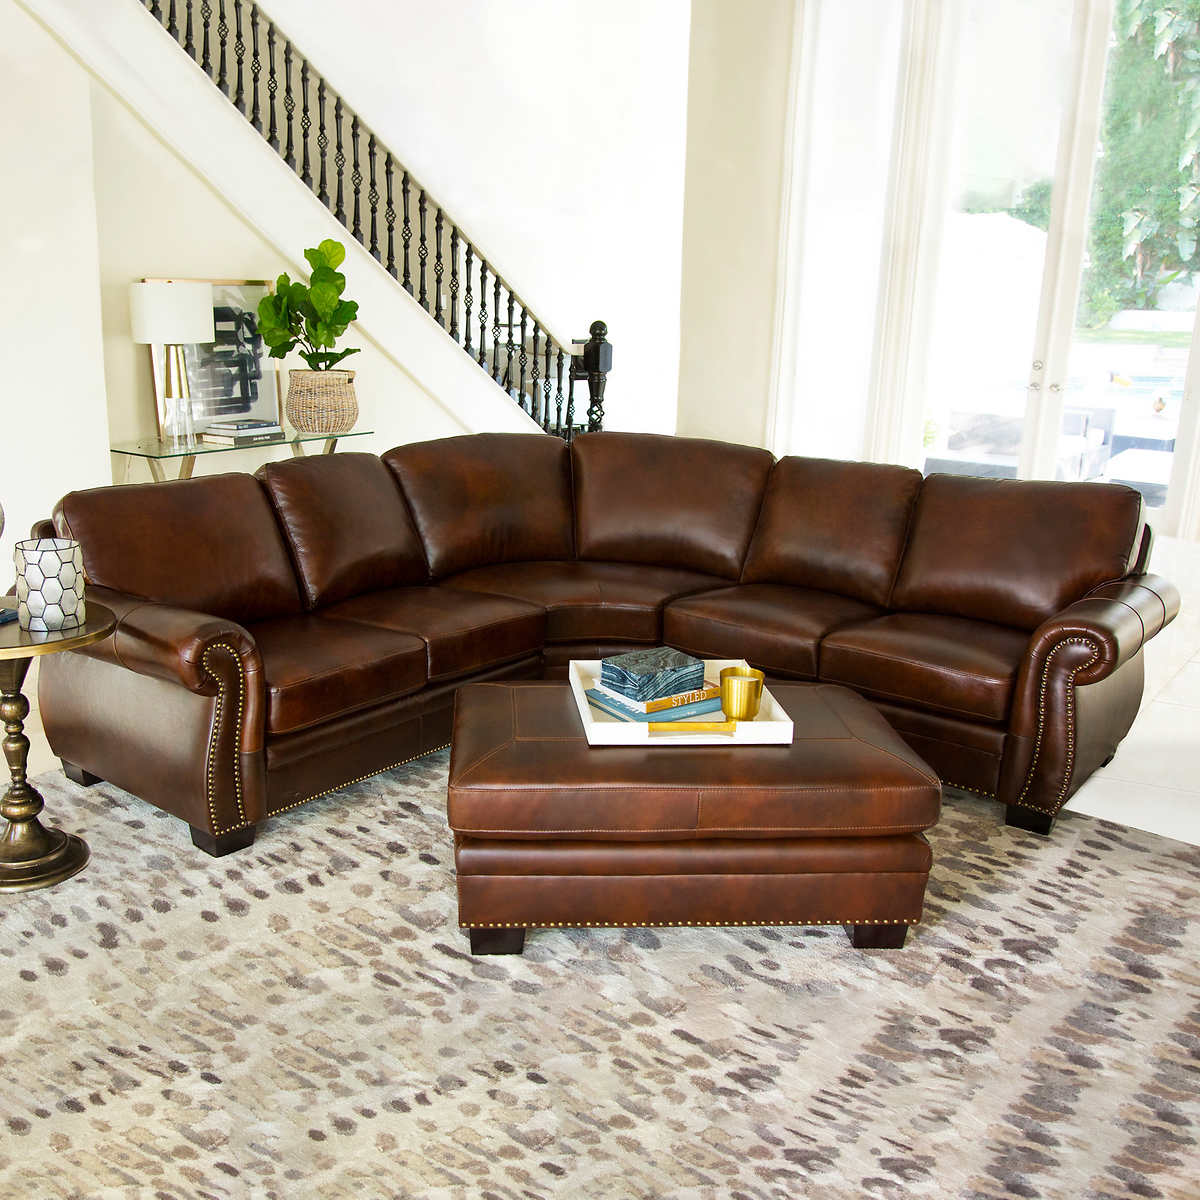 Brown leather living room furniture - Isabelle Top Grain Leather Sectional And Ottoman Living Room Set